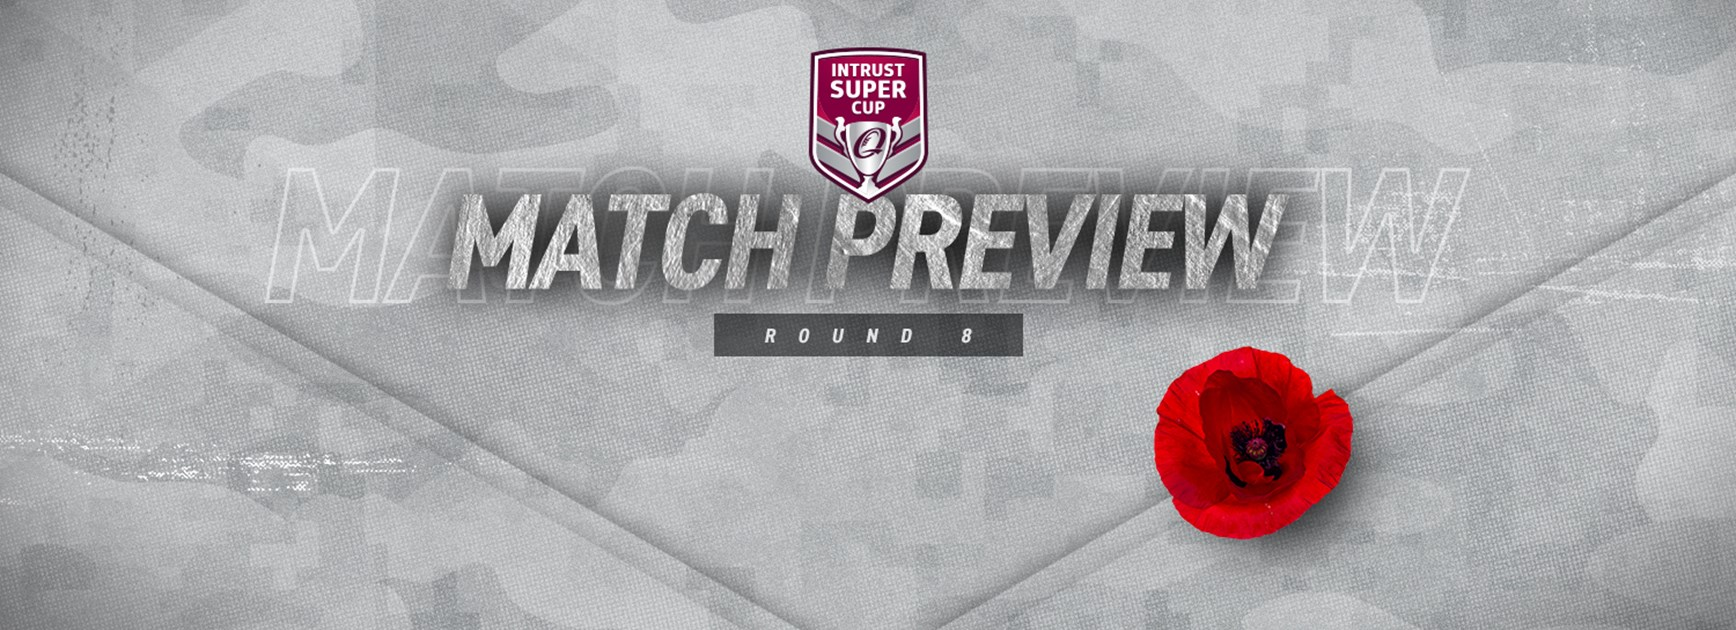 Anzac weekend Round 8 Preview